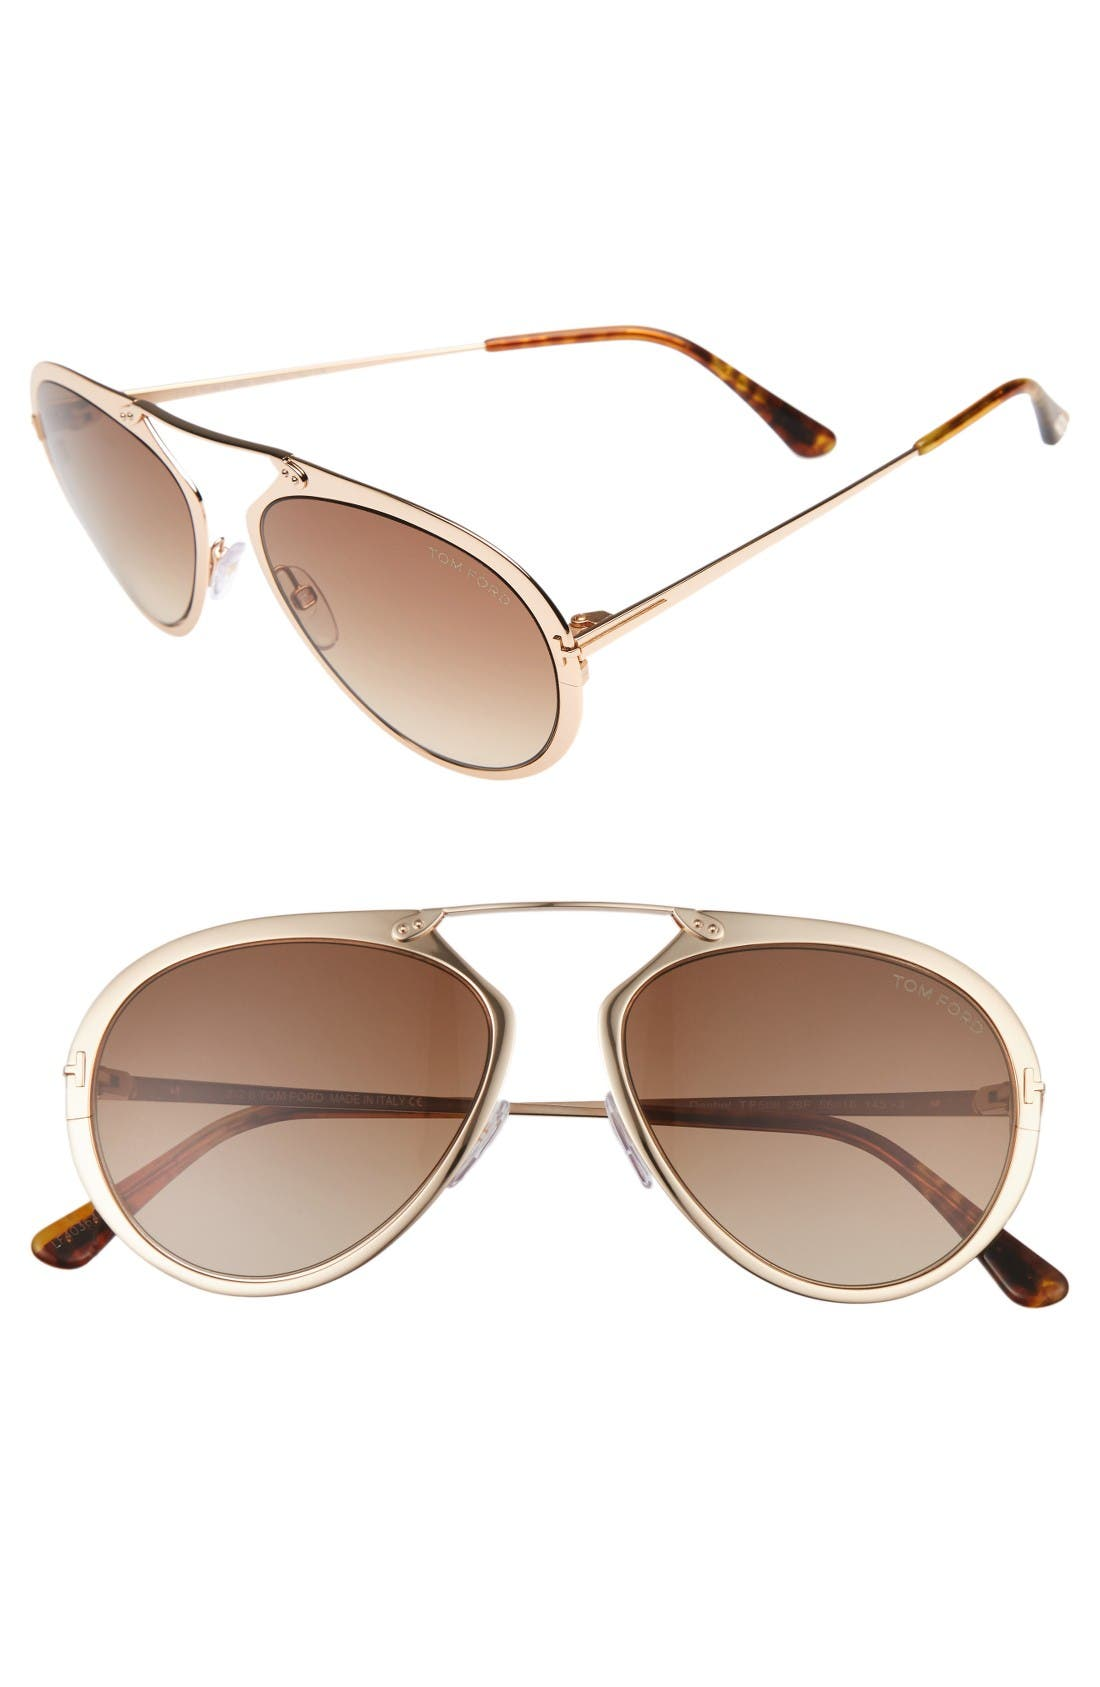 Dashel 55mm Sunglasses,                             Main thumbnail 1, color,                             Rose Gold/ Yellow/ Brown